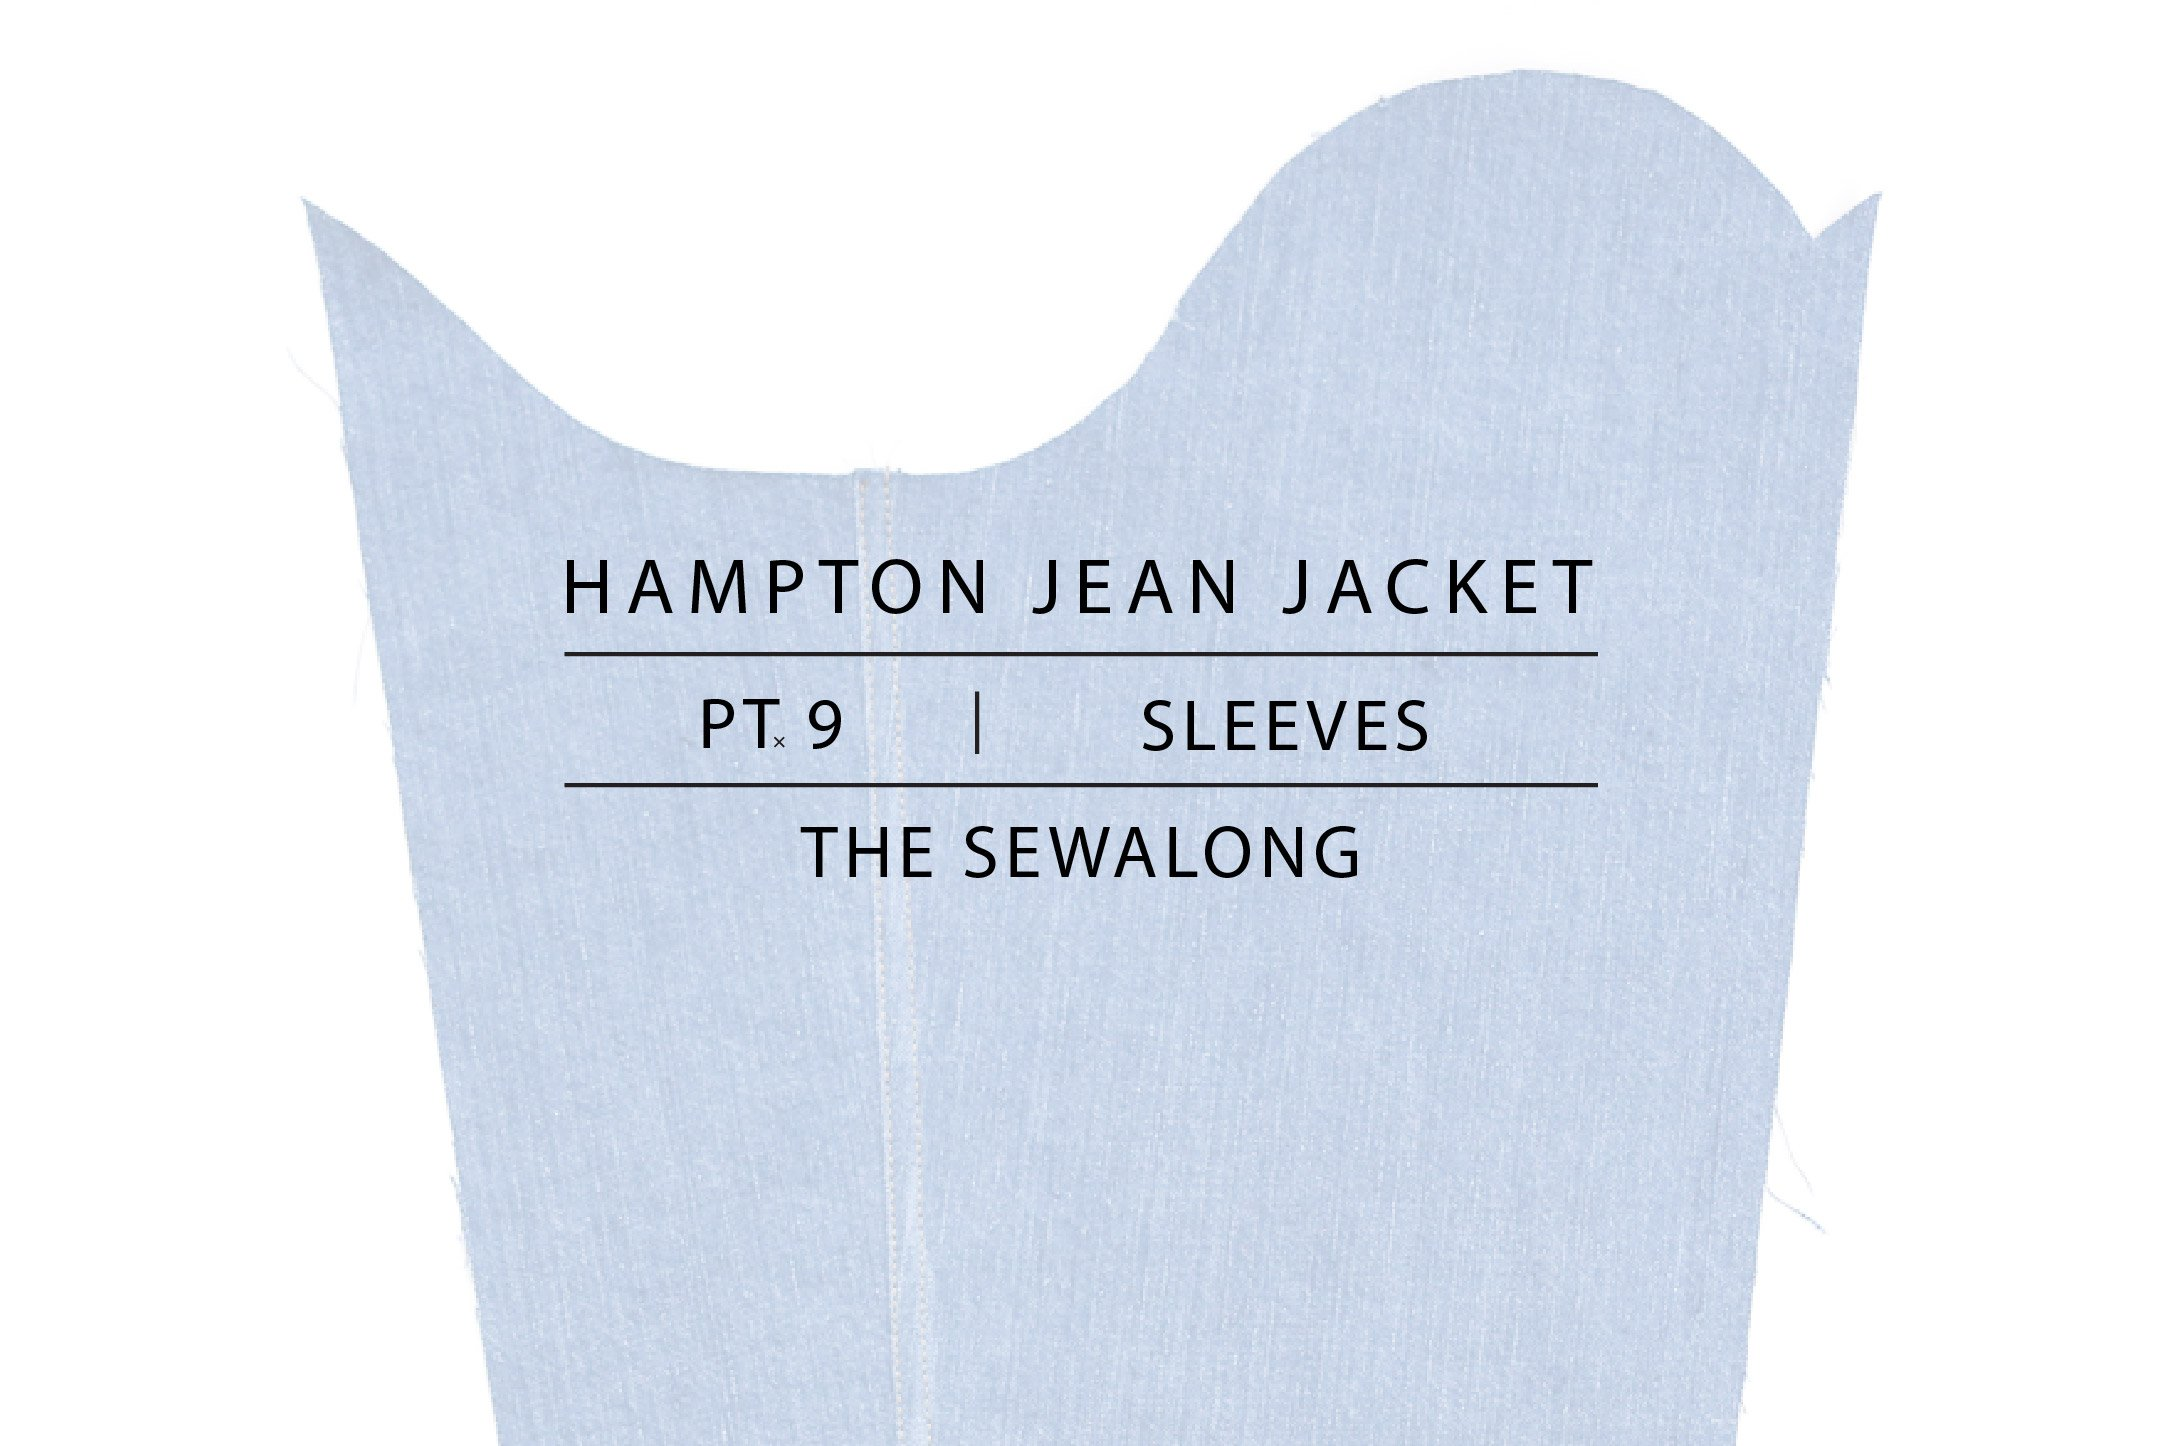 Hampton Jean Jacket Sewalong Pt. 9